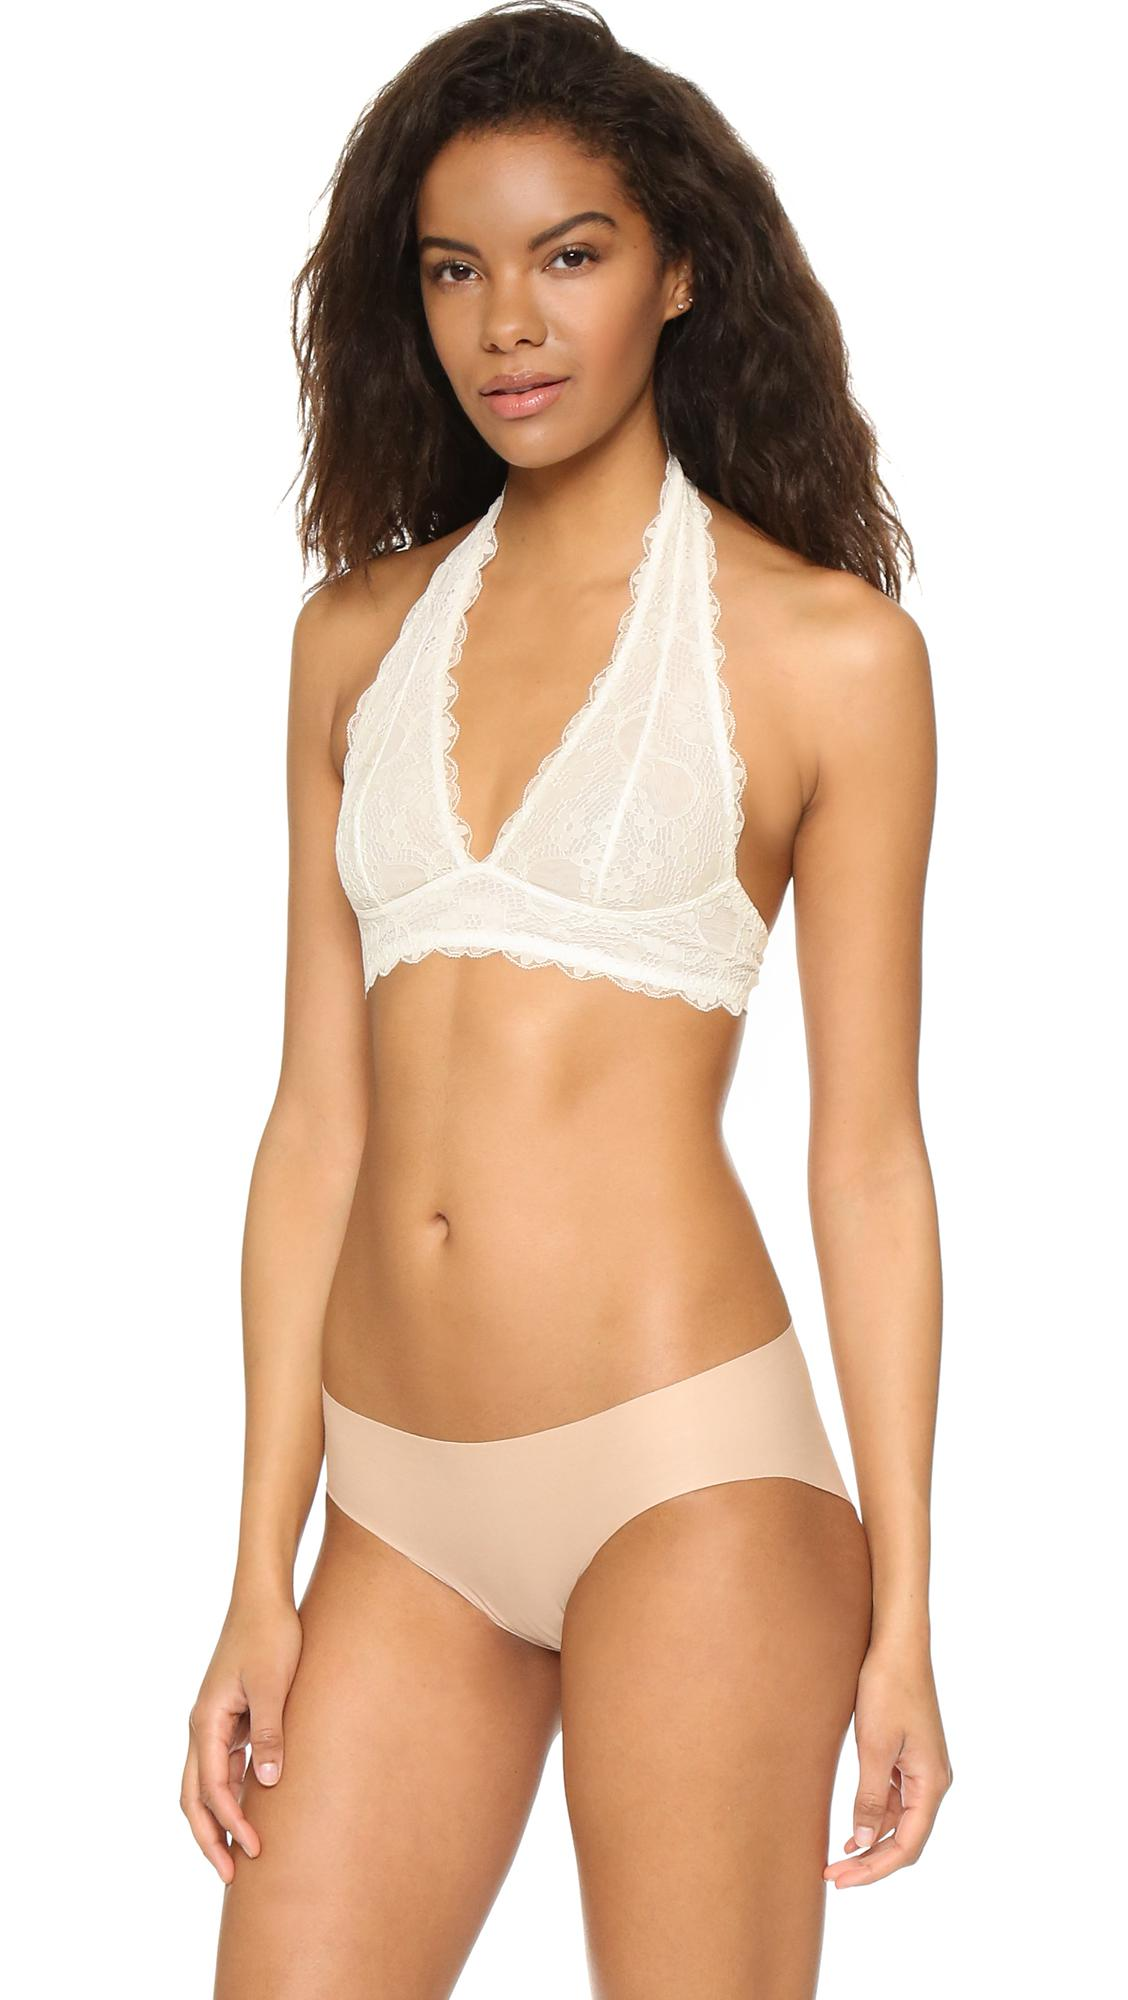 Very Cheap Halter Bra - Ivory Free People Buy Cheap Outlet Store Discount Footlocker Brand New Unisex Sale Browse kPFwNY